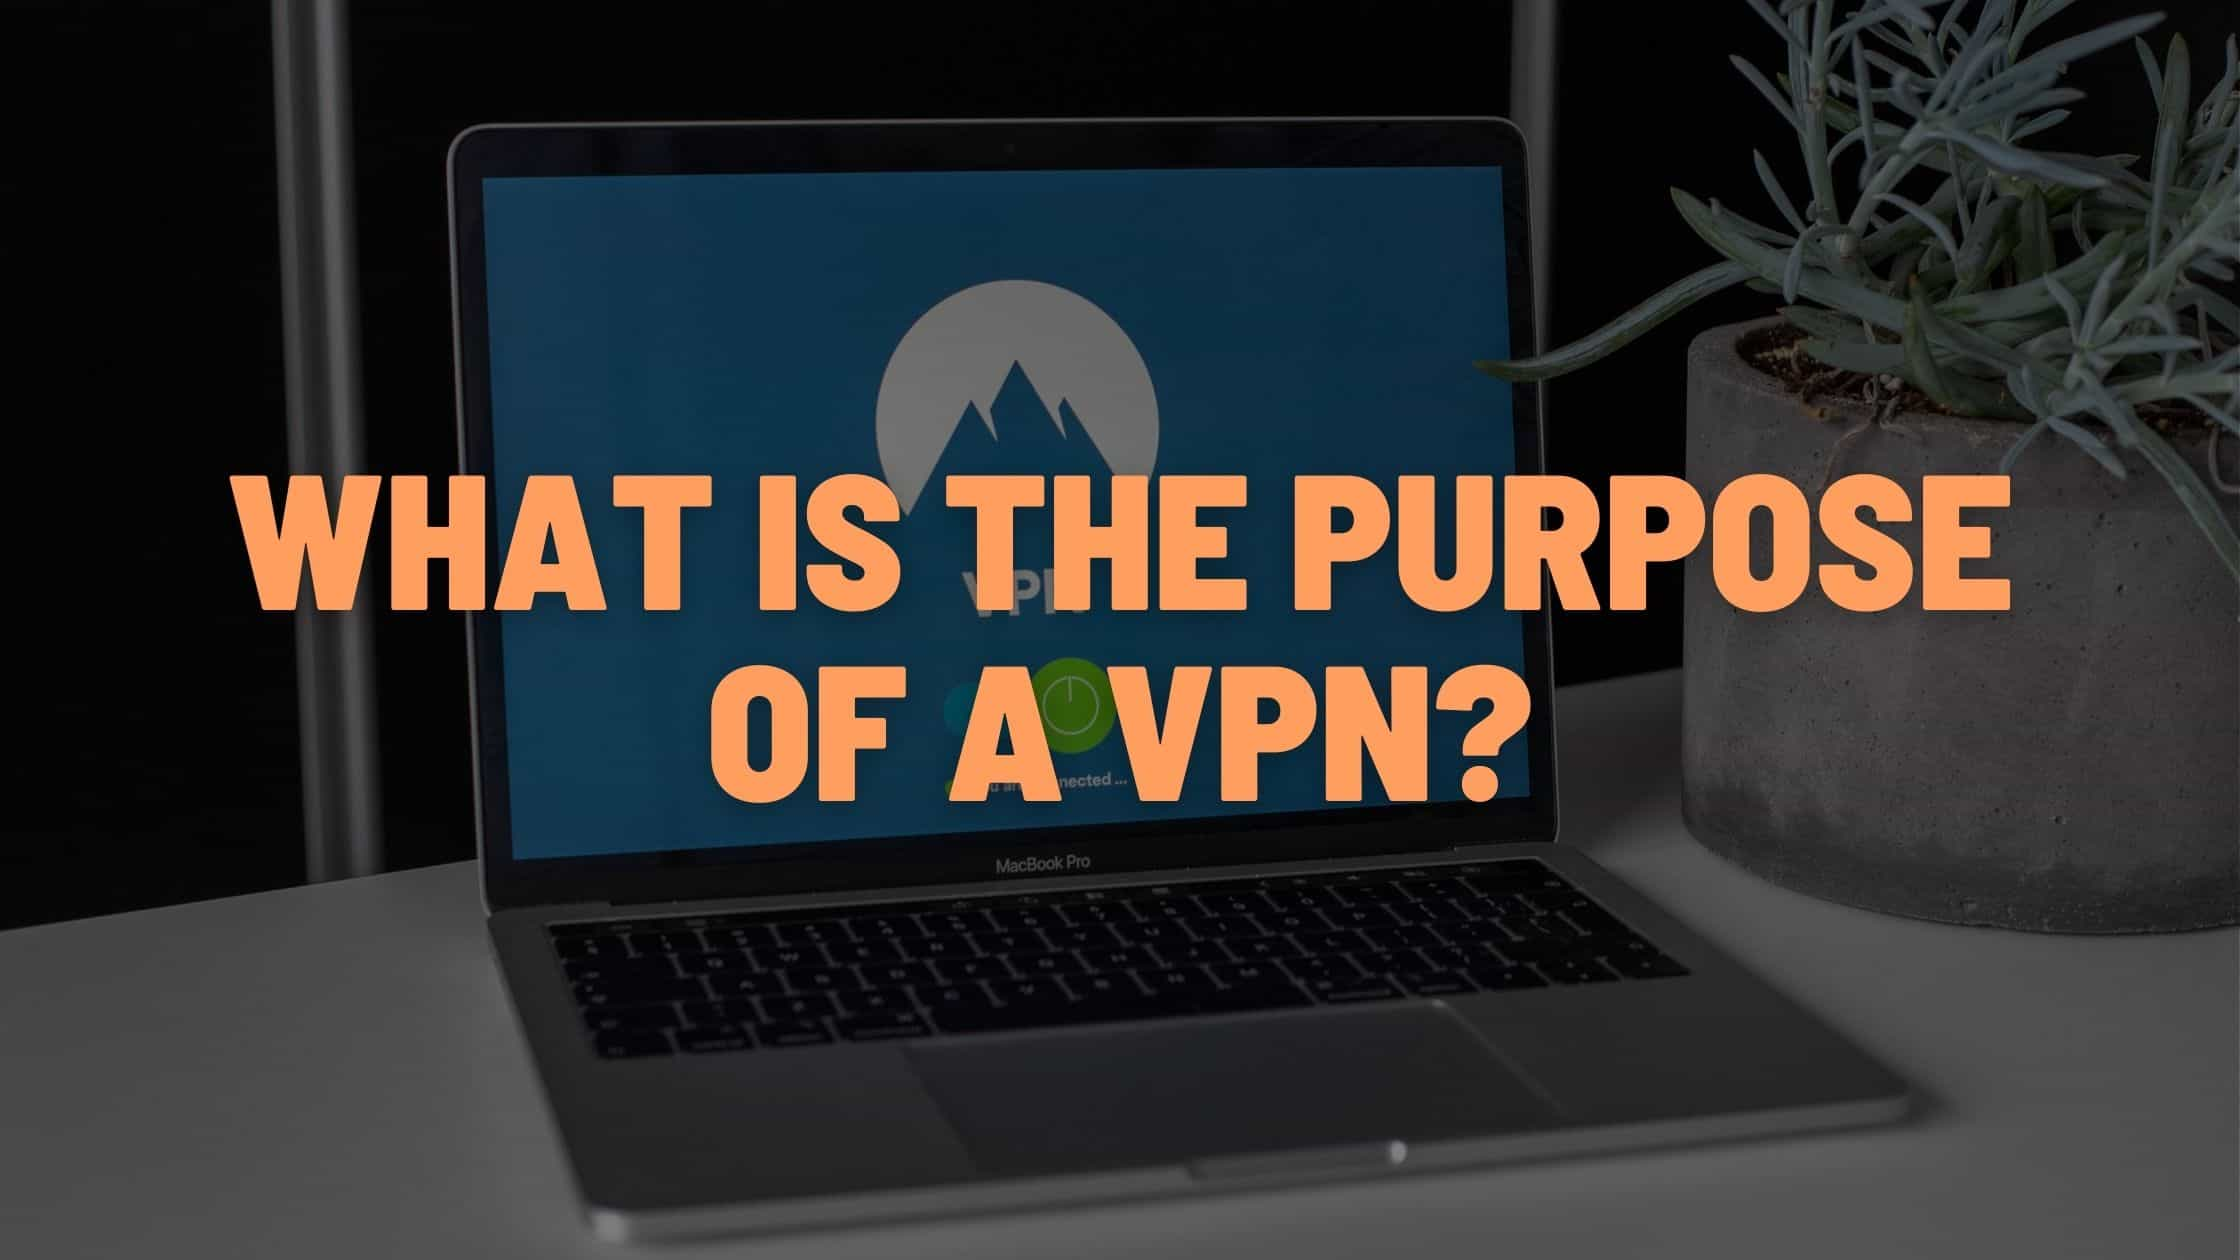 what is the purpose of a vpn?